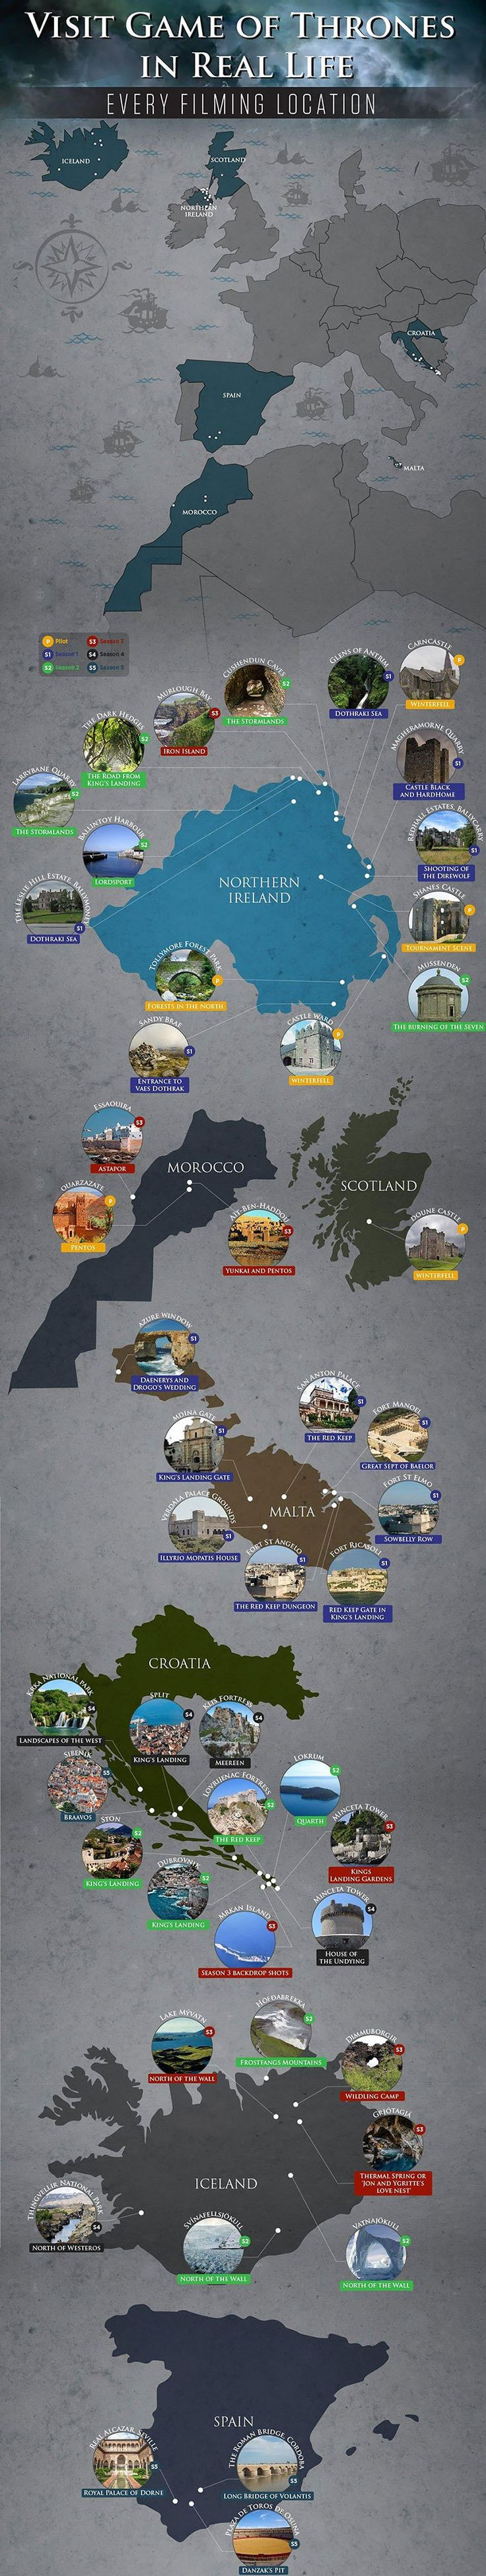 Las locaciones de Game Of Thrones en la vida real 00